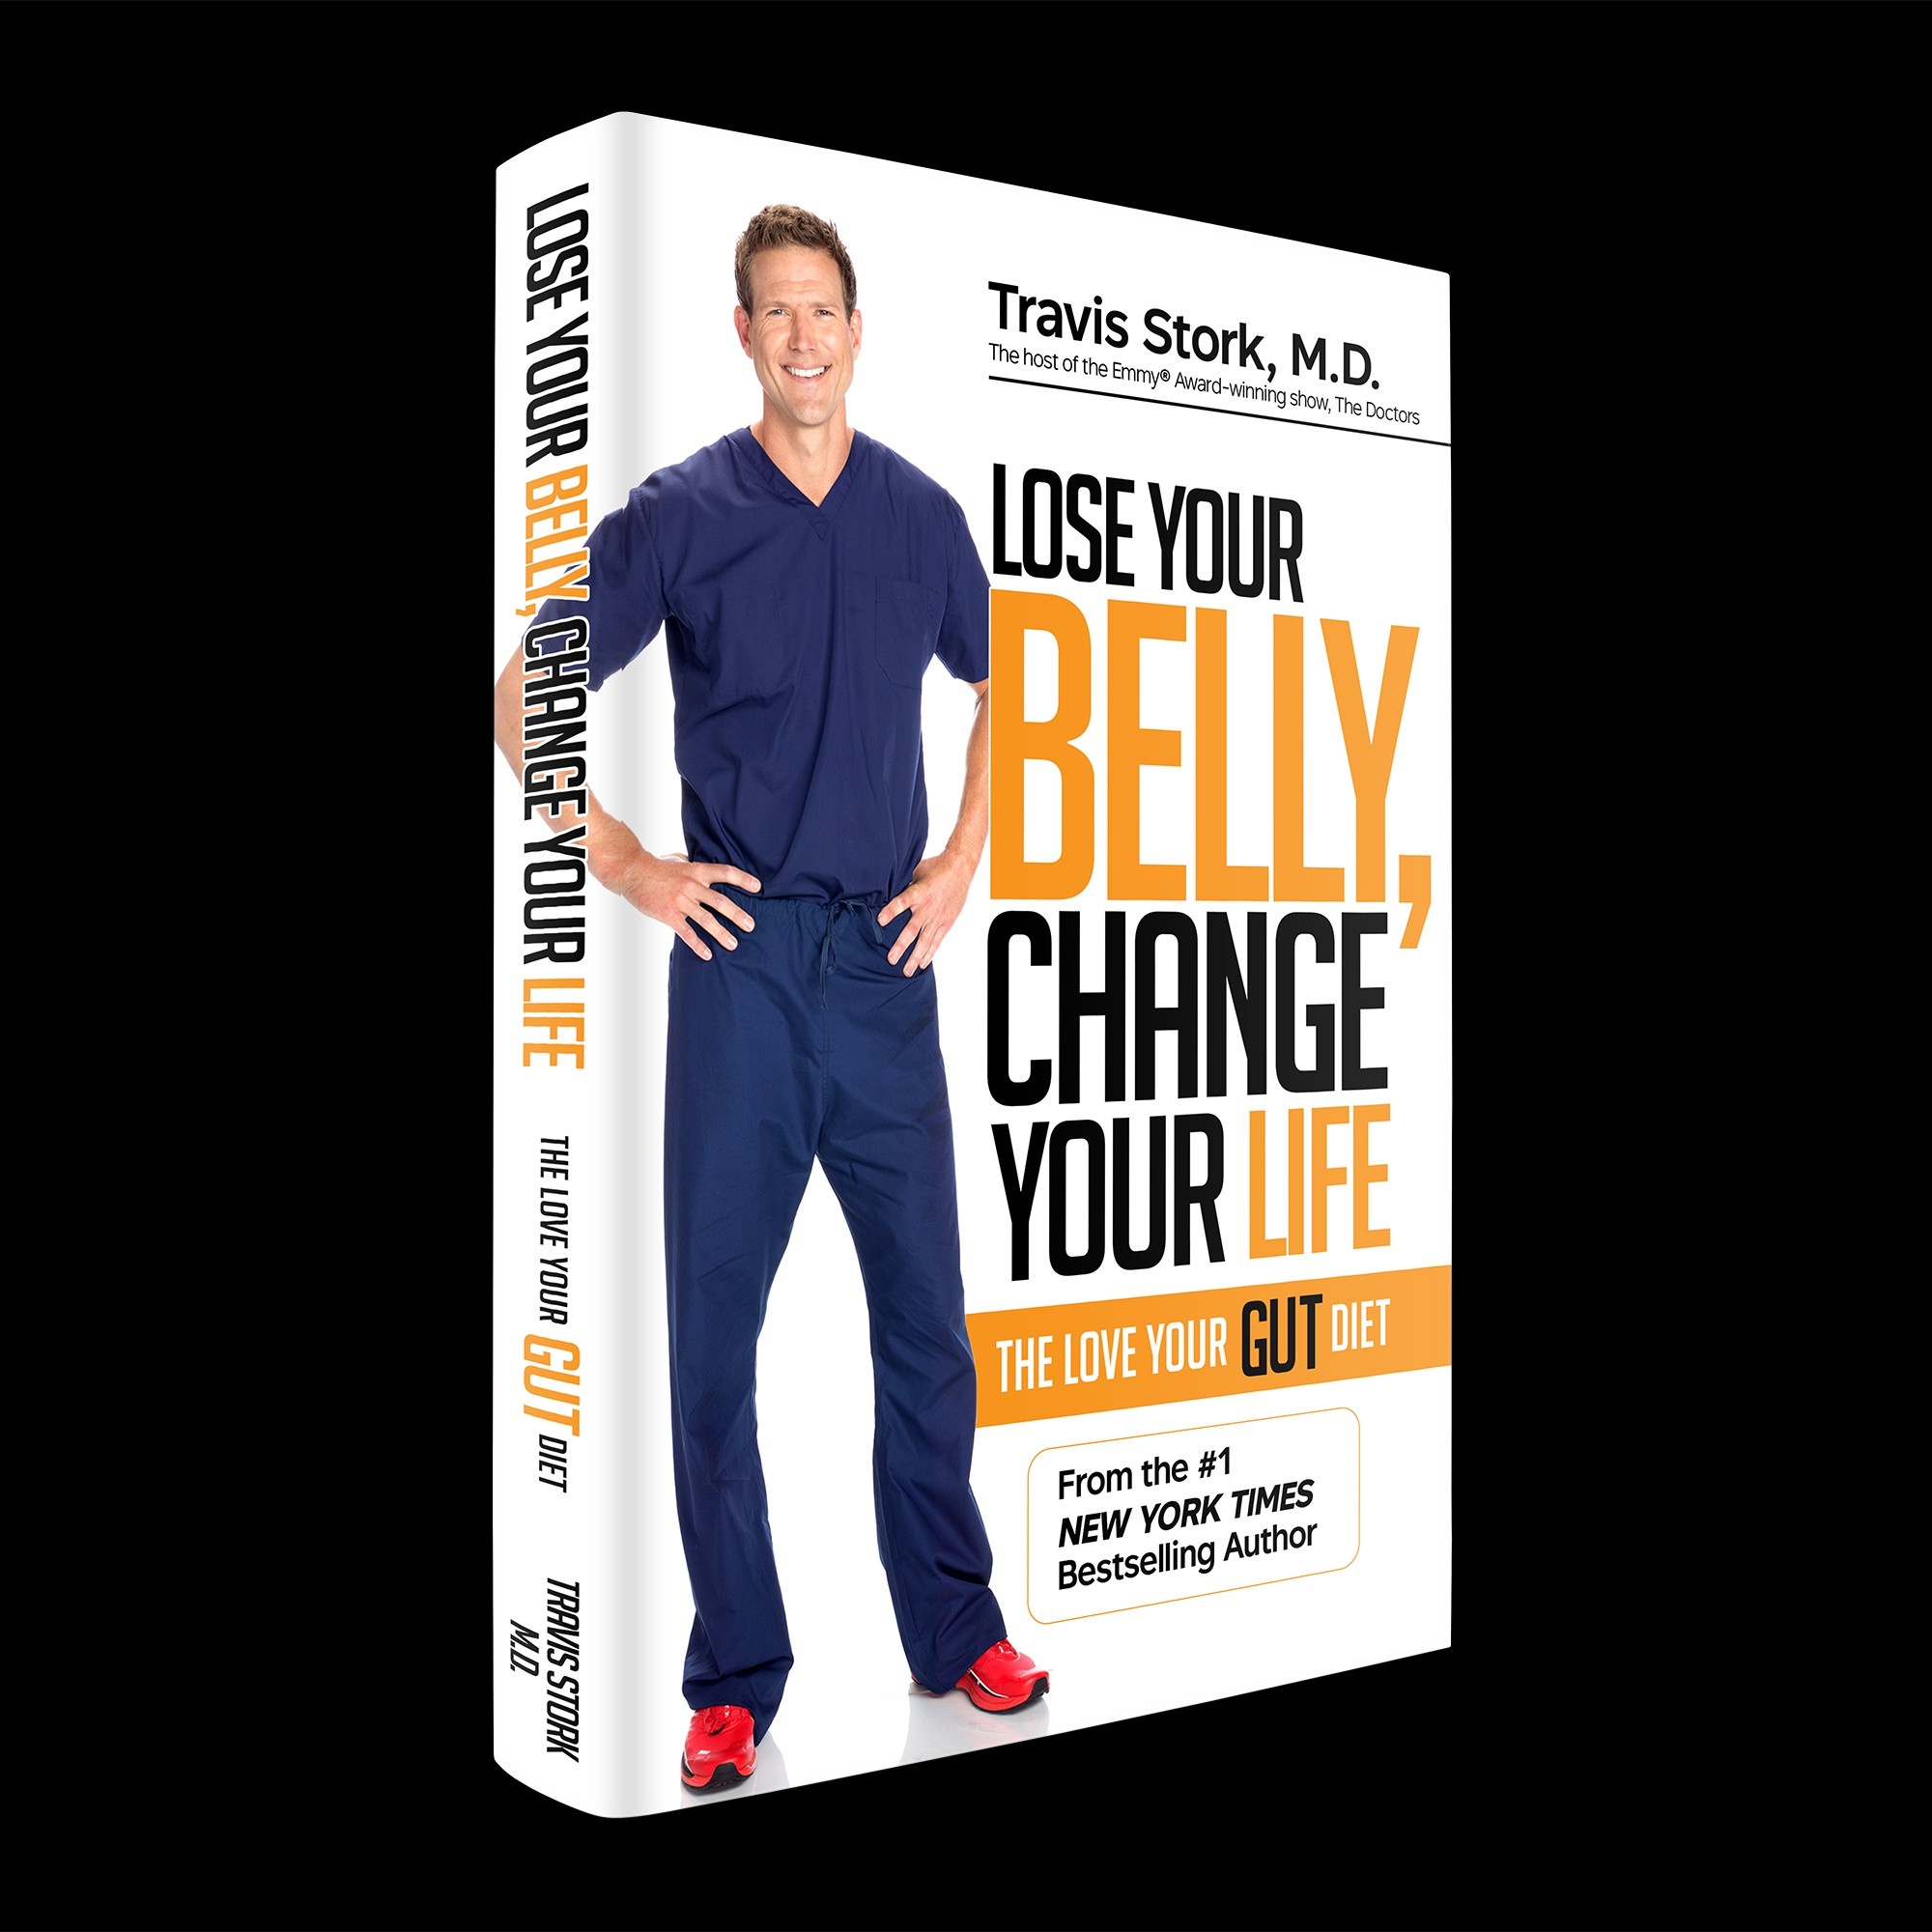 Create a diet book cover for a bestselling author and TV host!